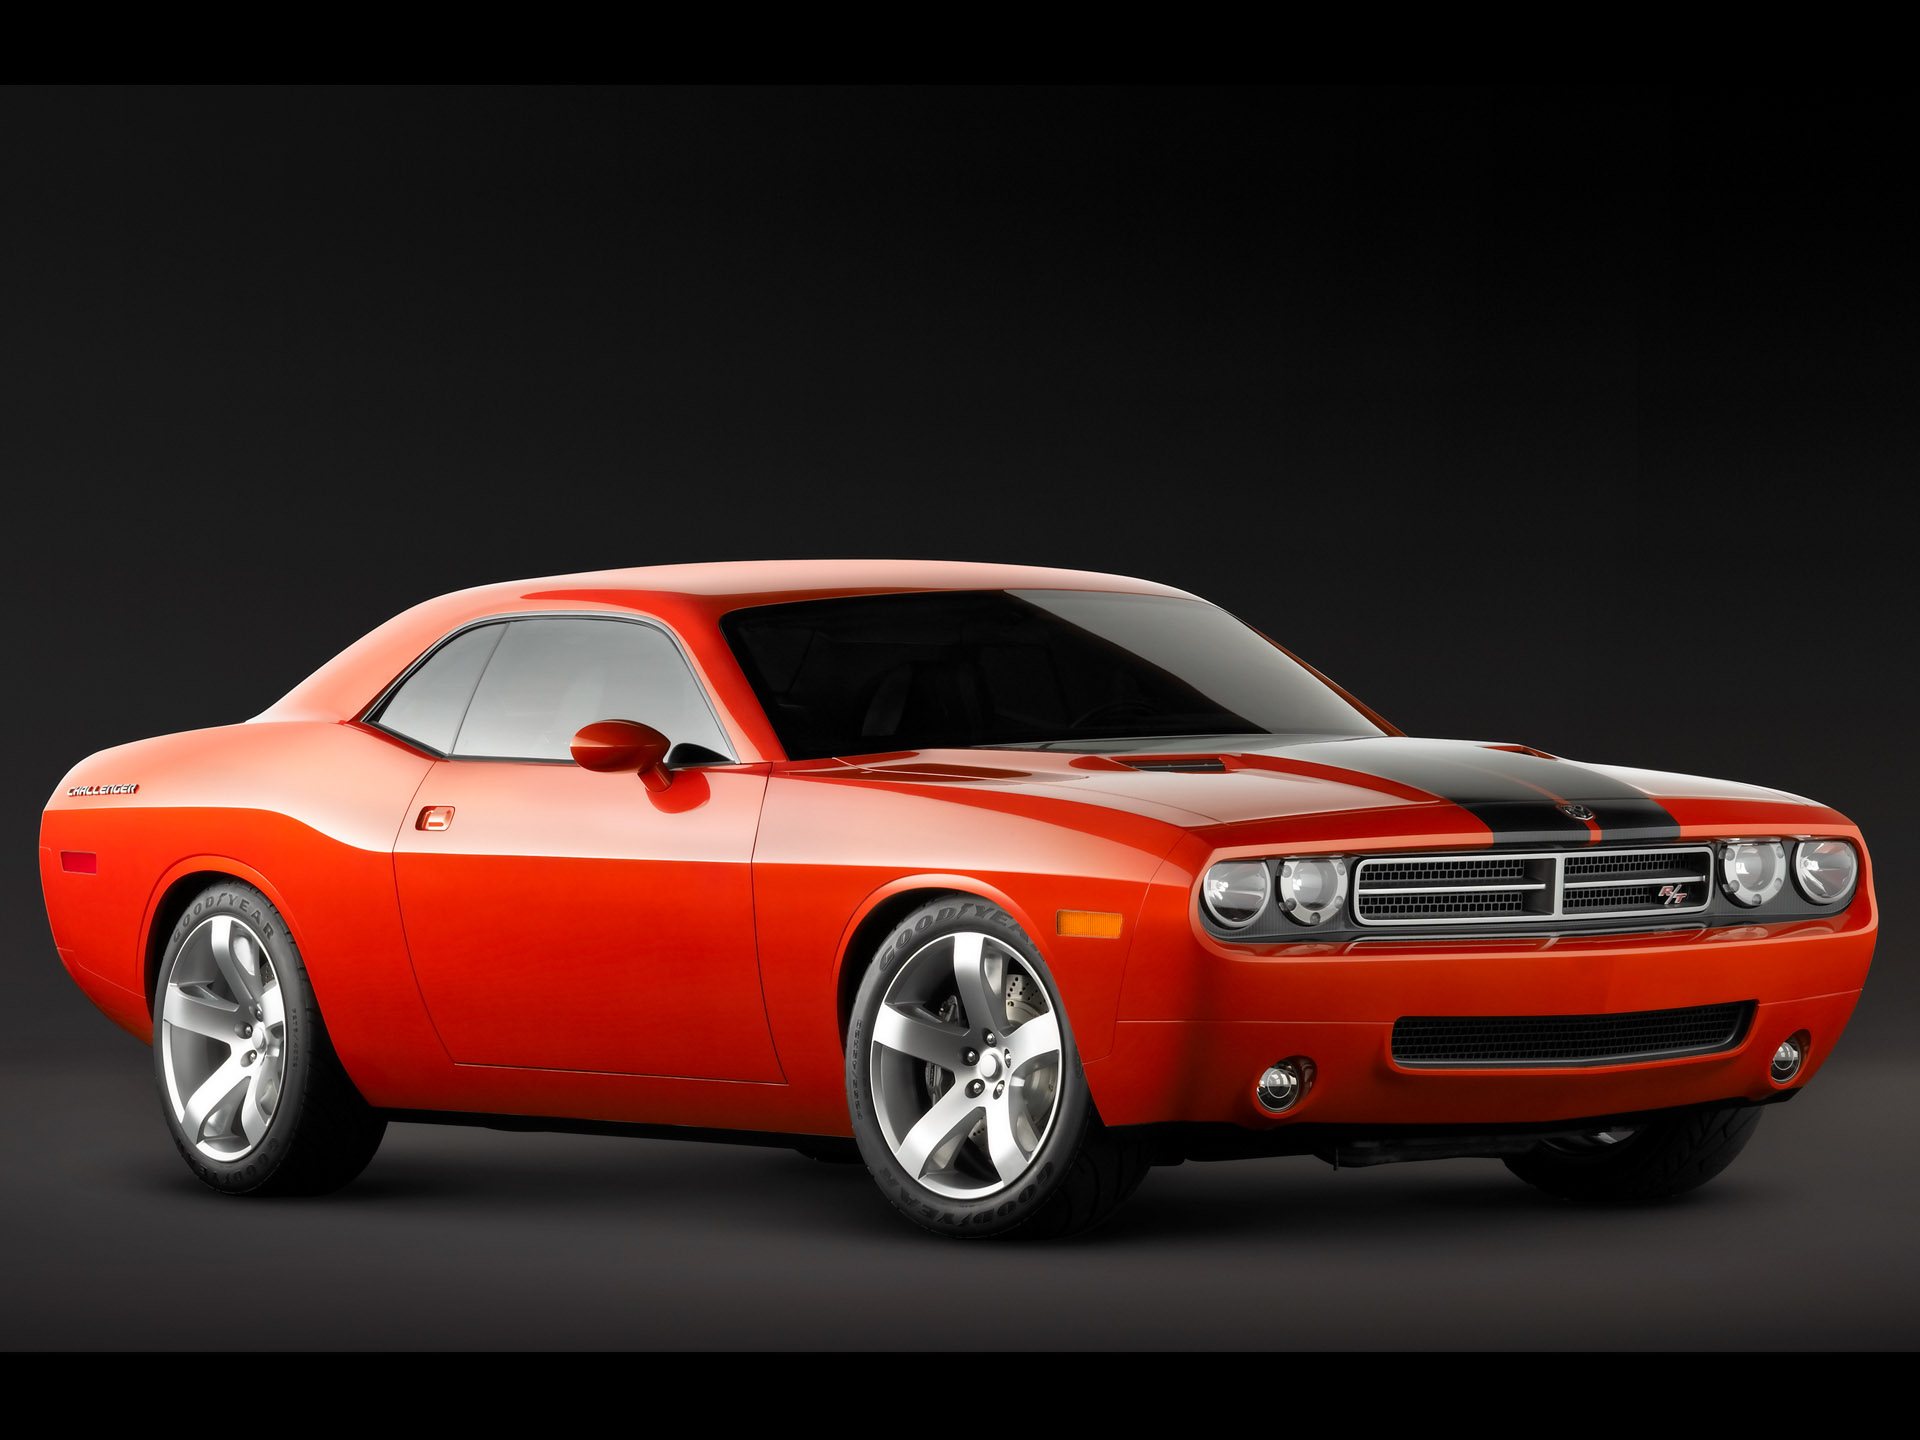 Dodge Challenger TorRed High Resolution Image Wallpapers HD